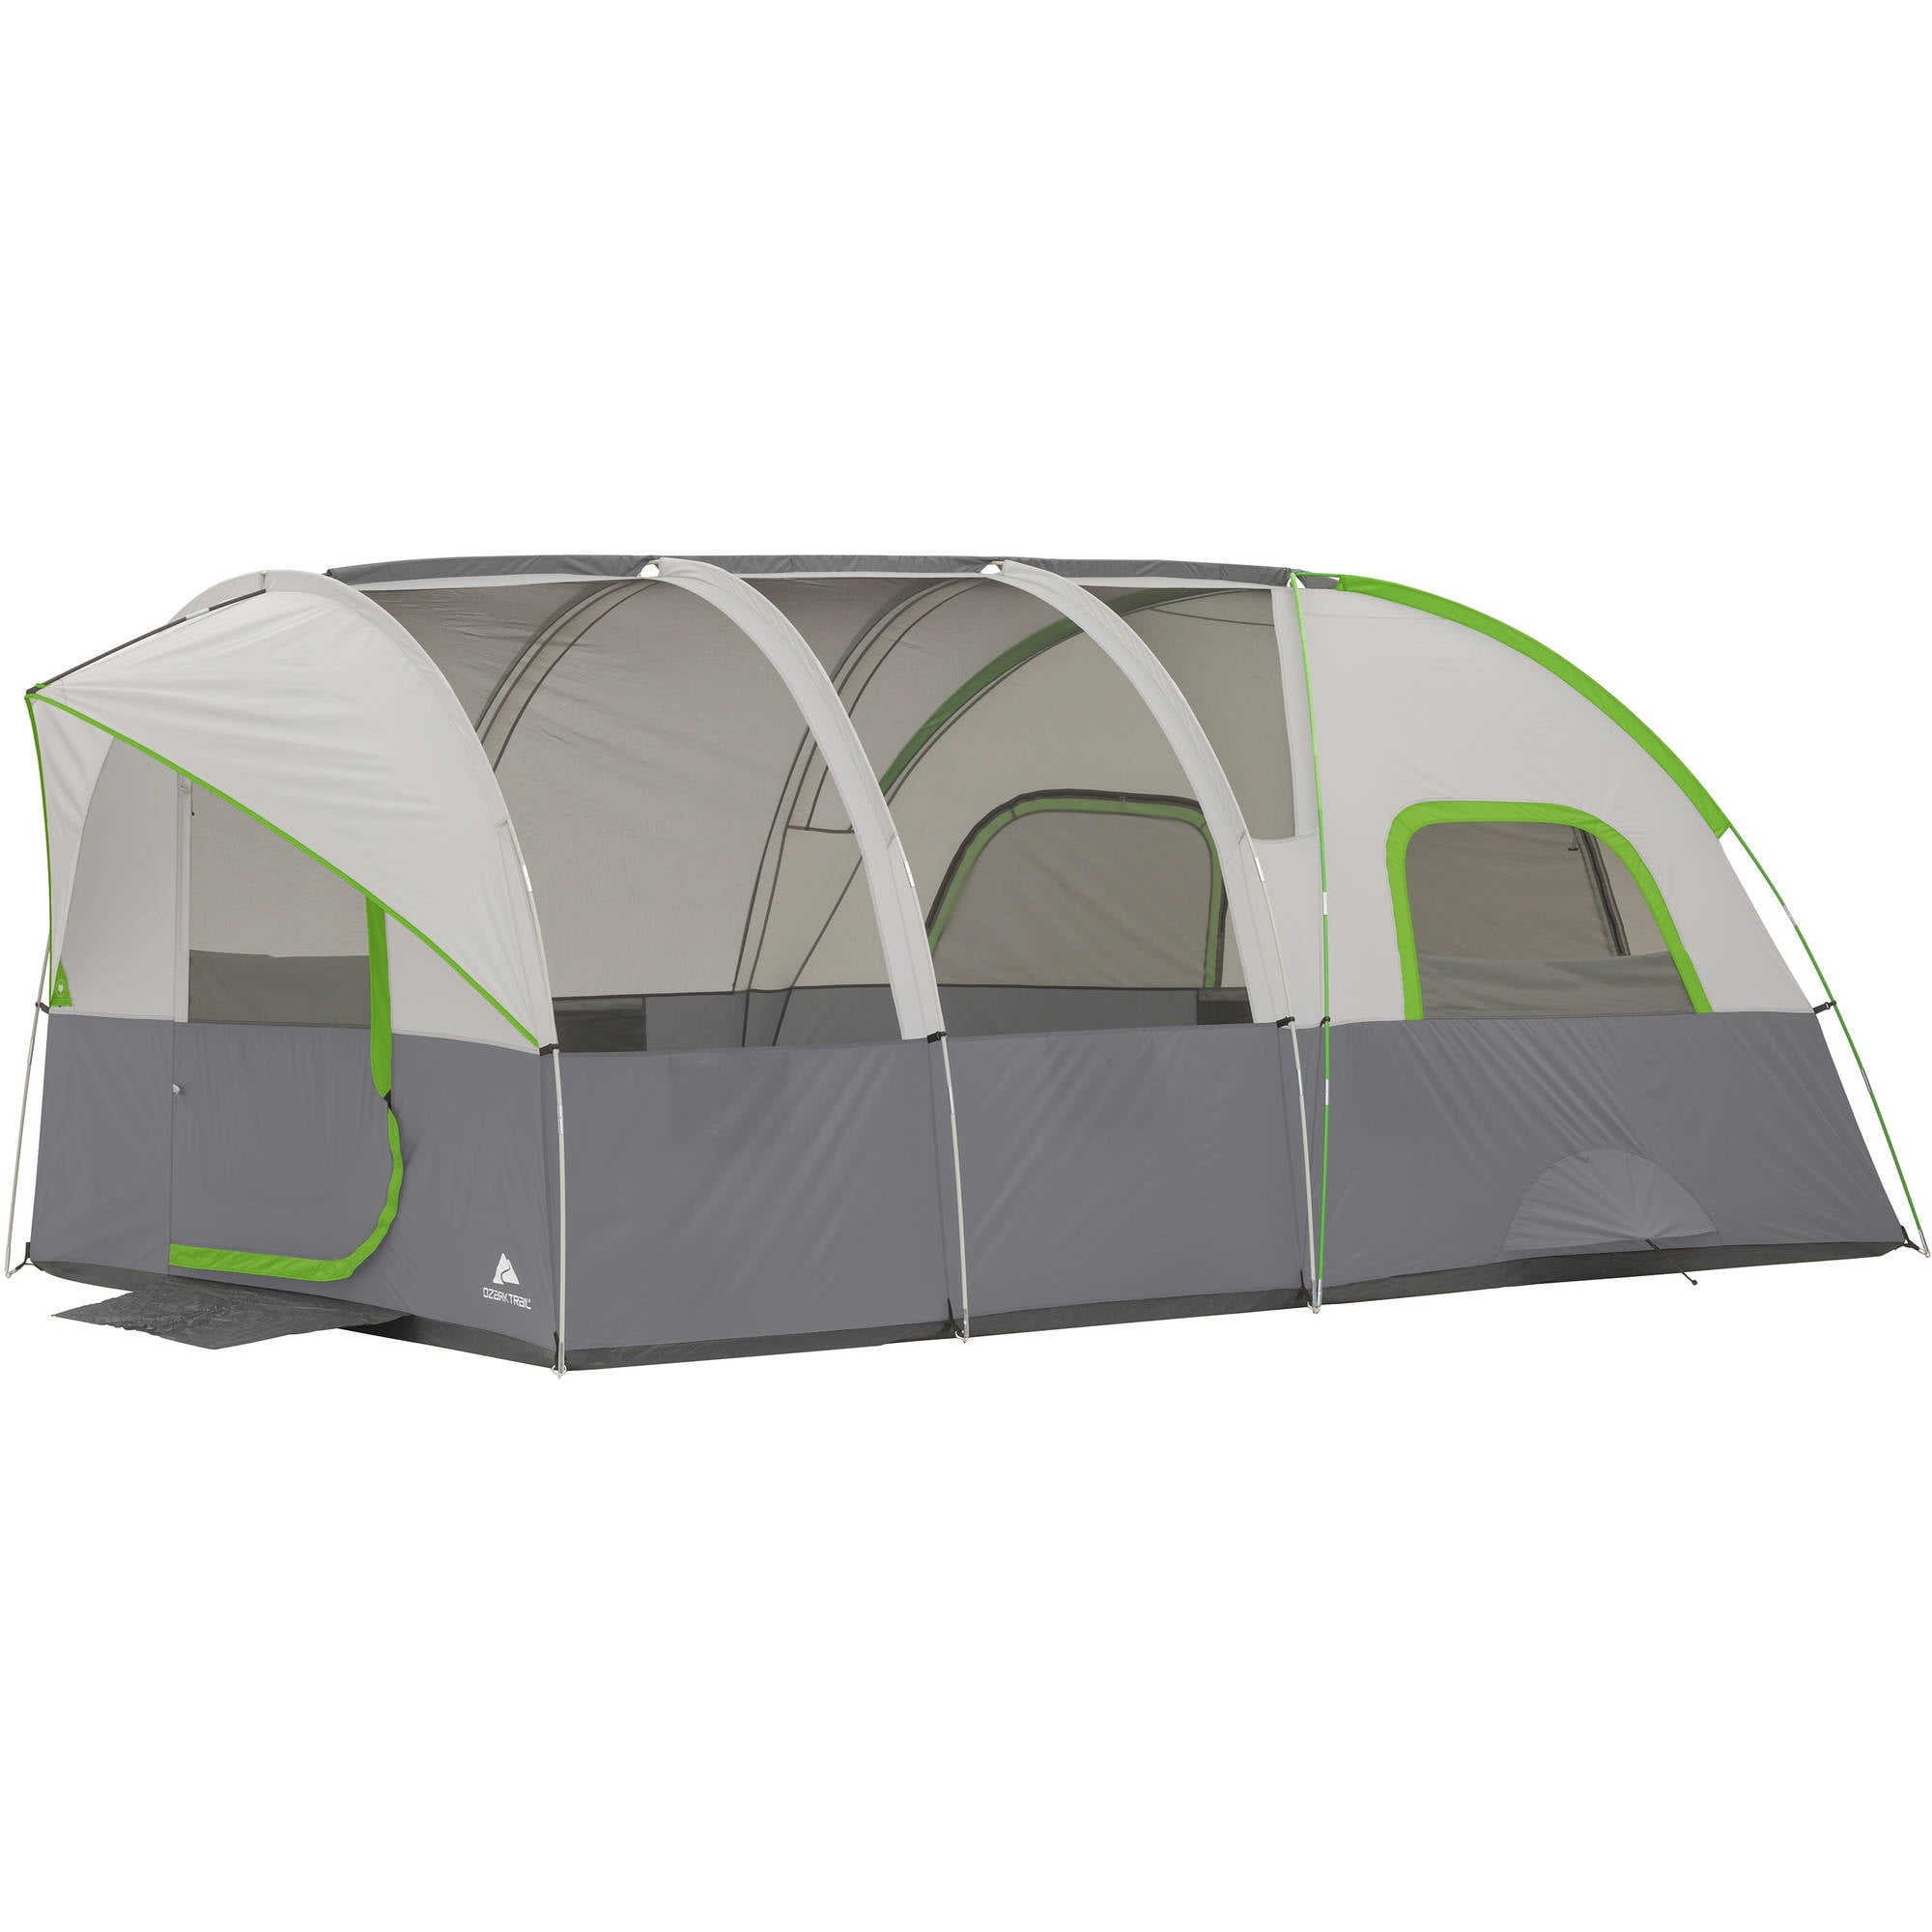 Ozark Trail 16' x 8' Modified Dome Tunnel Tent, Sleeps 8 by Bohemian Travel Gear Limited